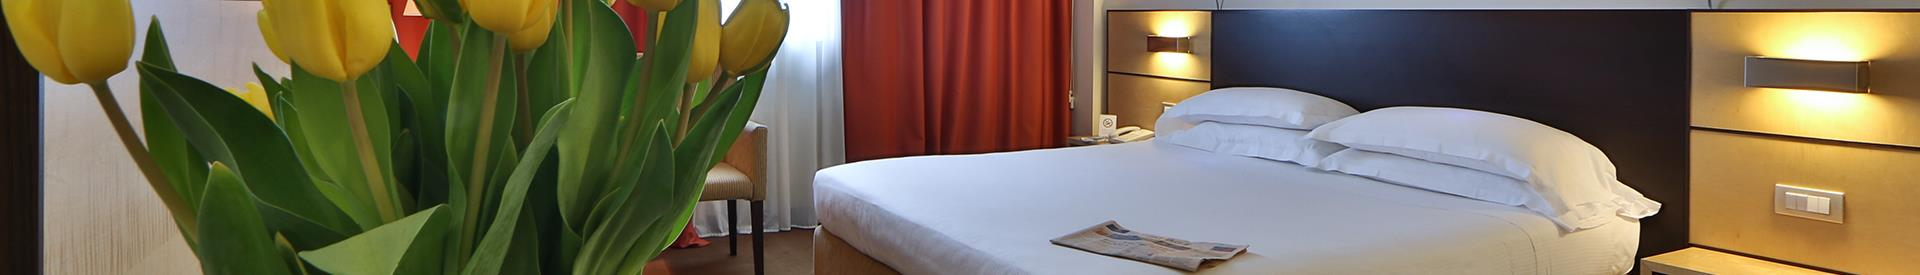 4 star  hotel room in Cornaredo (MI)